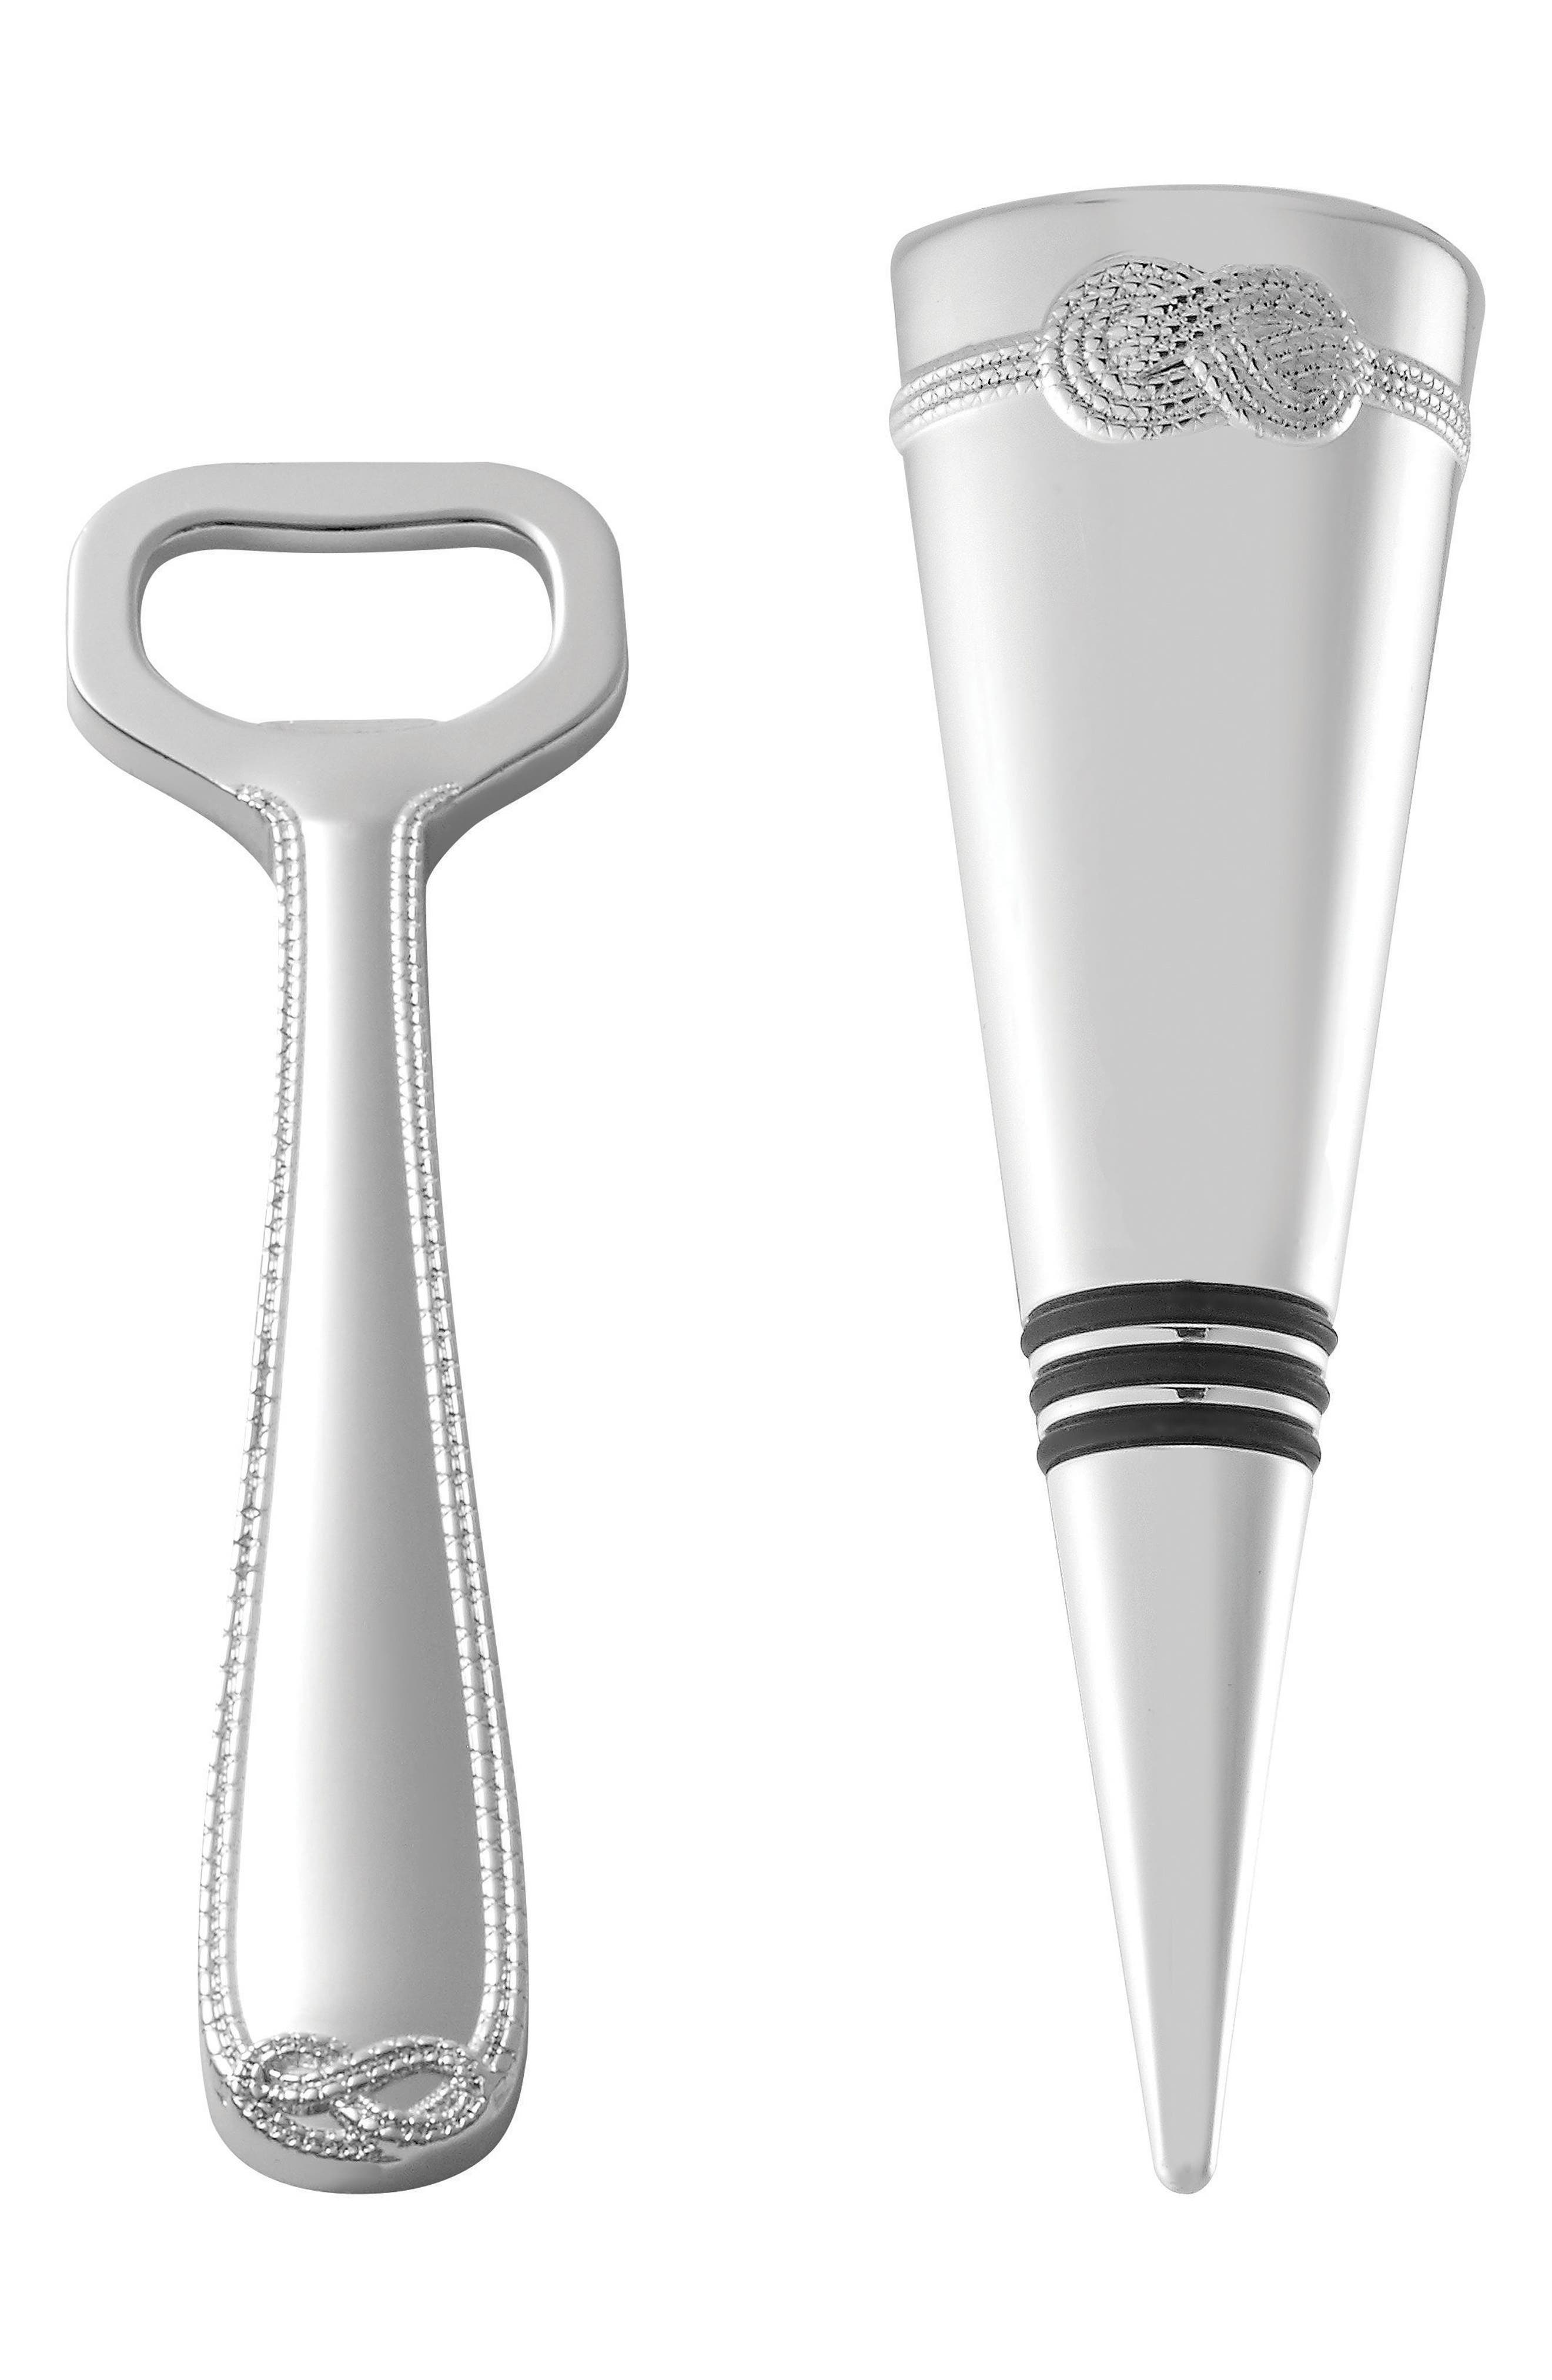 x Wedgewood Infinity Silver Plated Bottle Opener & Stopper,                             Main thumbnail 1, color,                             Metallic Silver